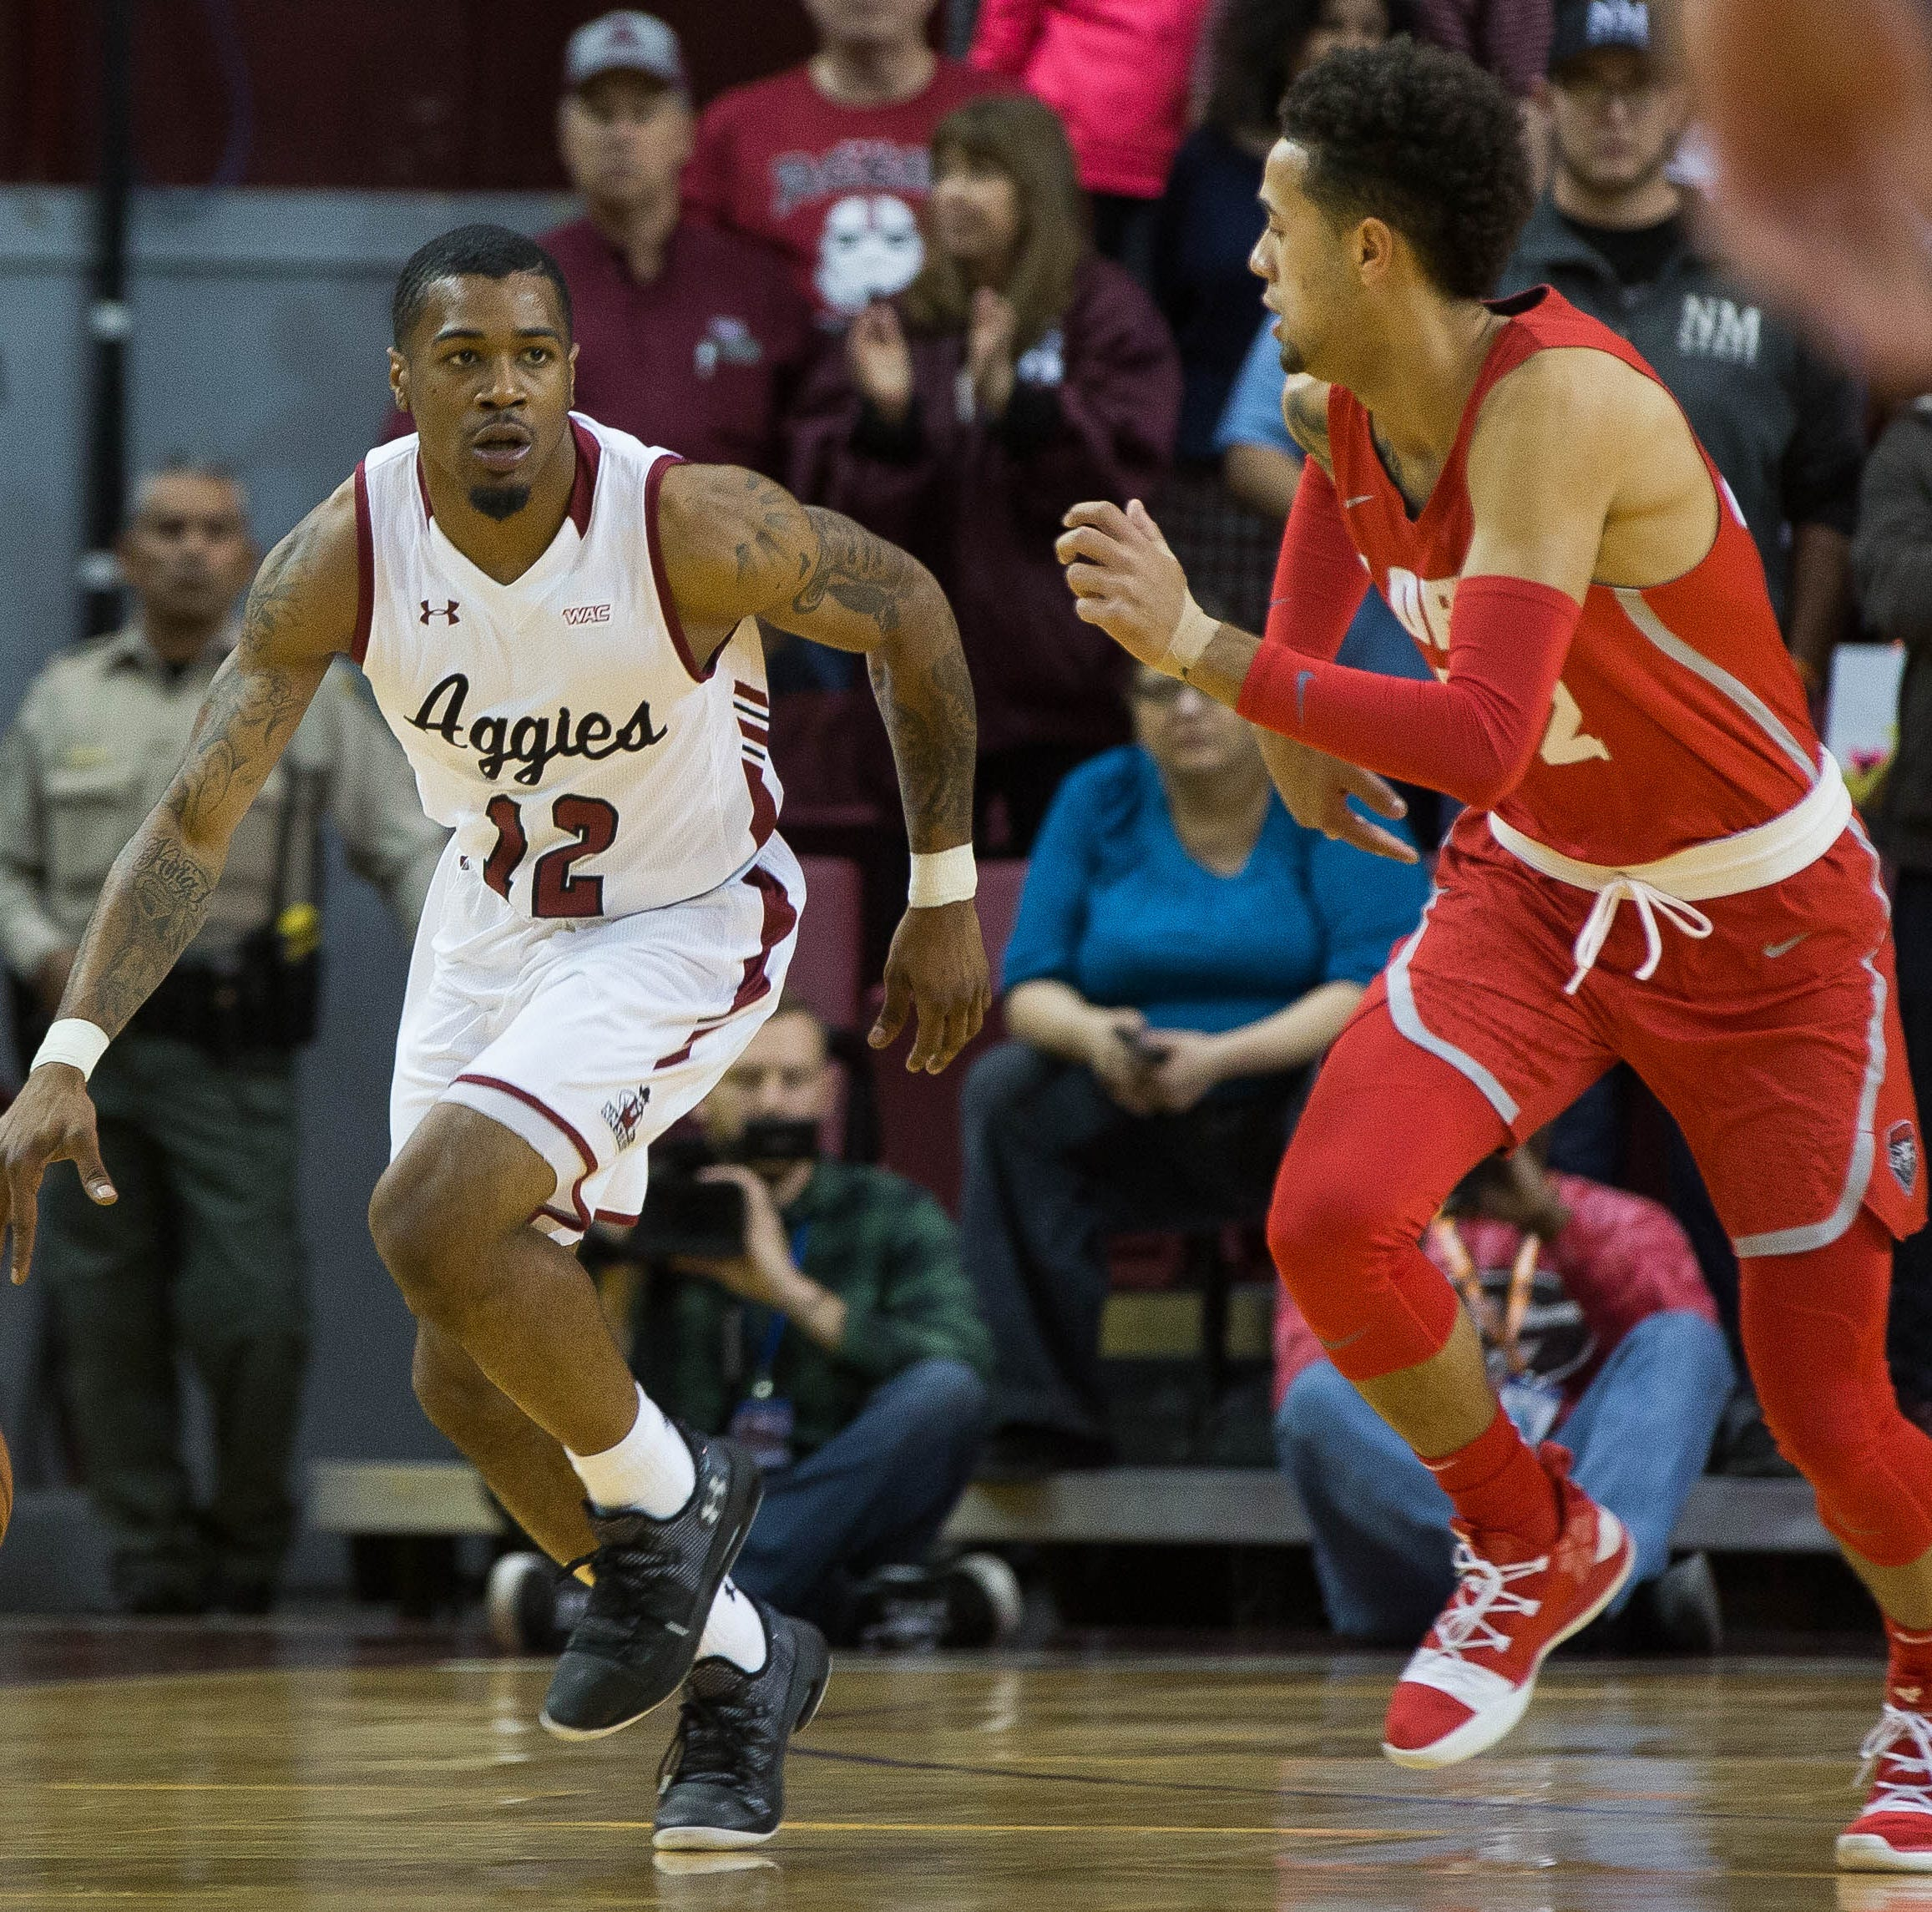 New Mexico State blows out New Mexico for 5th straight win over Lobos